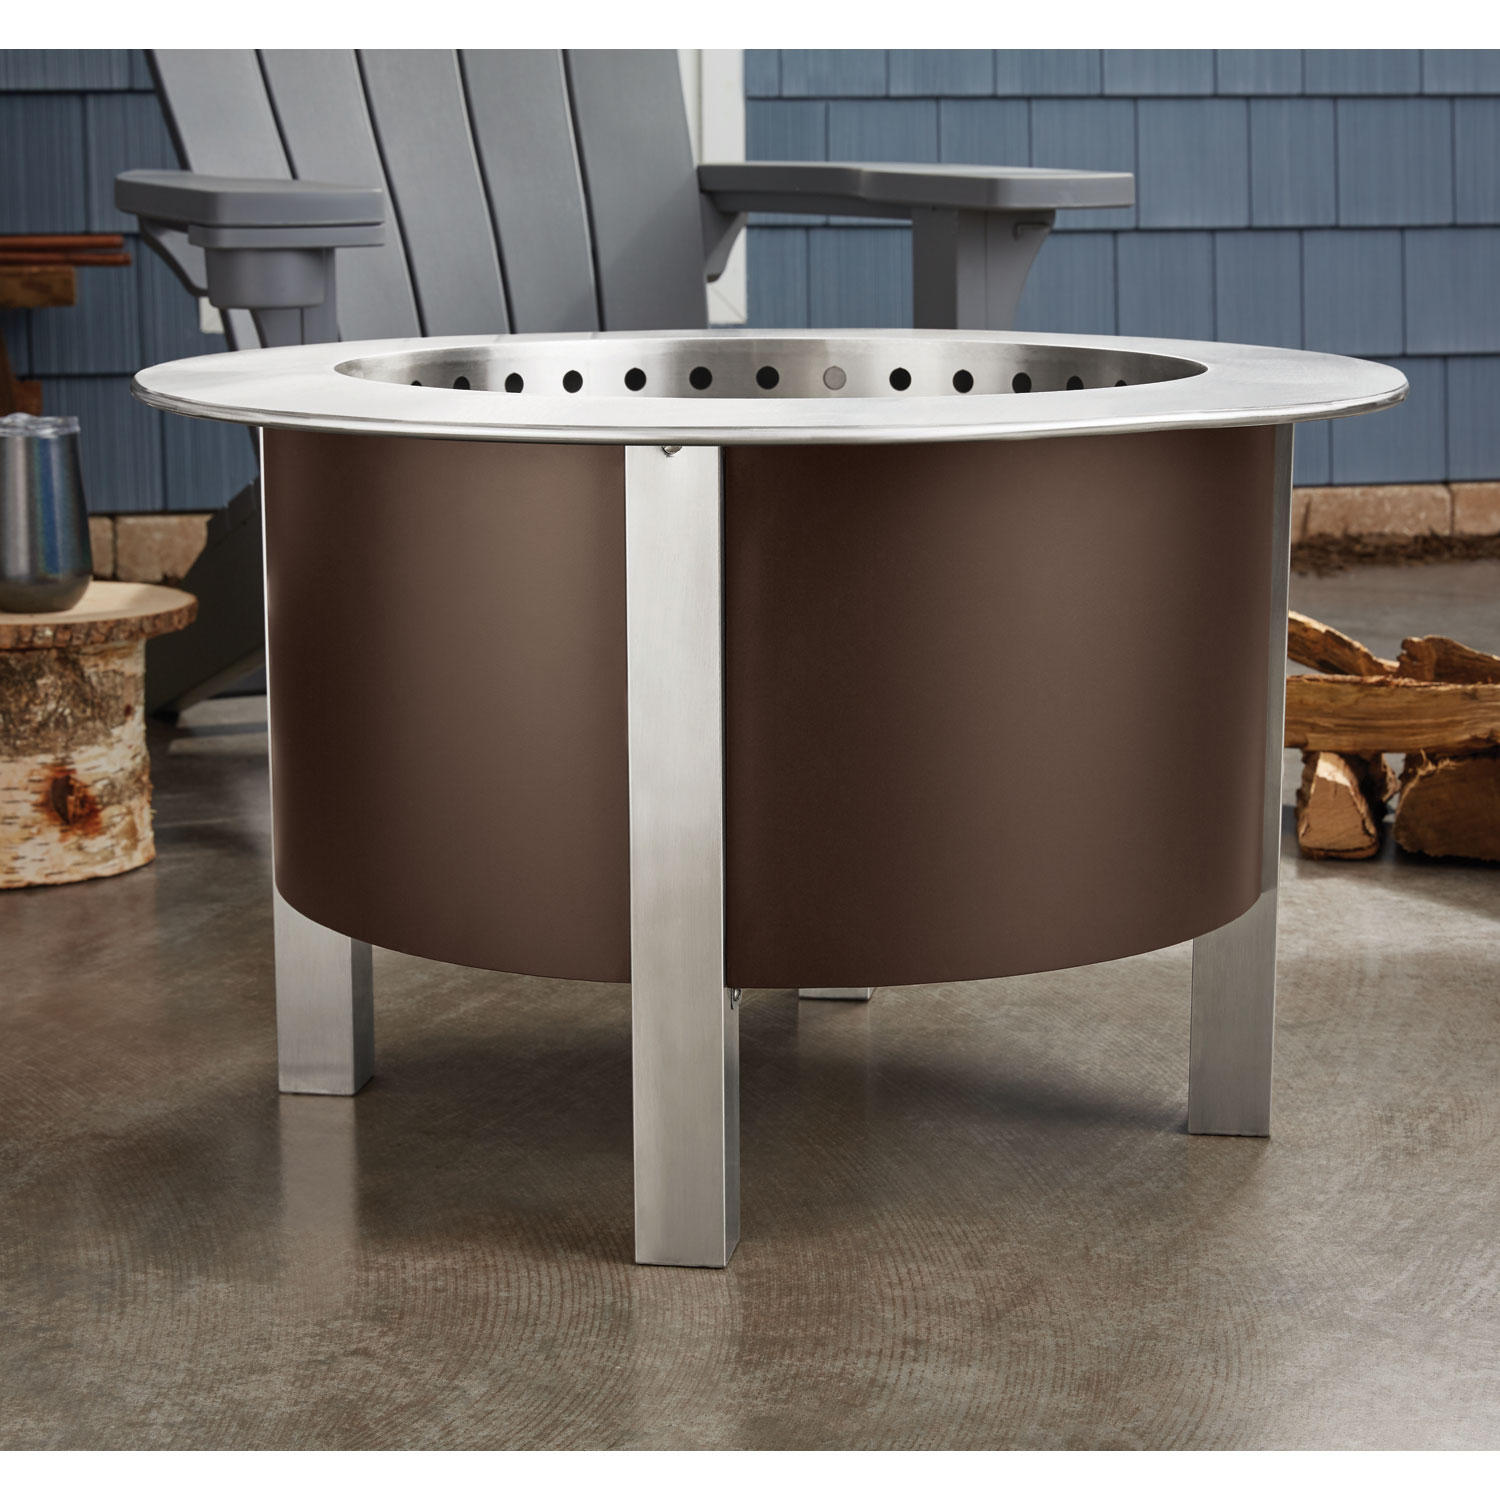 Member's Mark Smokeless Wood-Burning Fire Pit with 304 Stainless Steel Fire Bowl